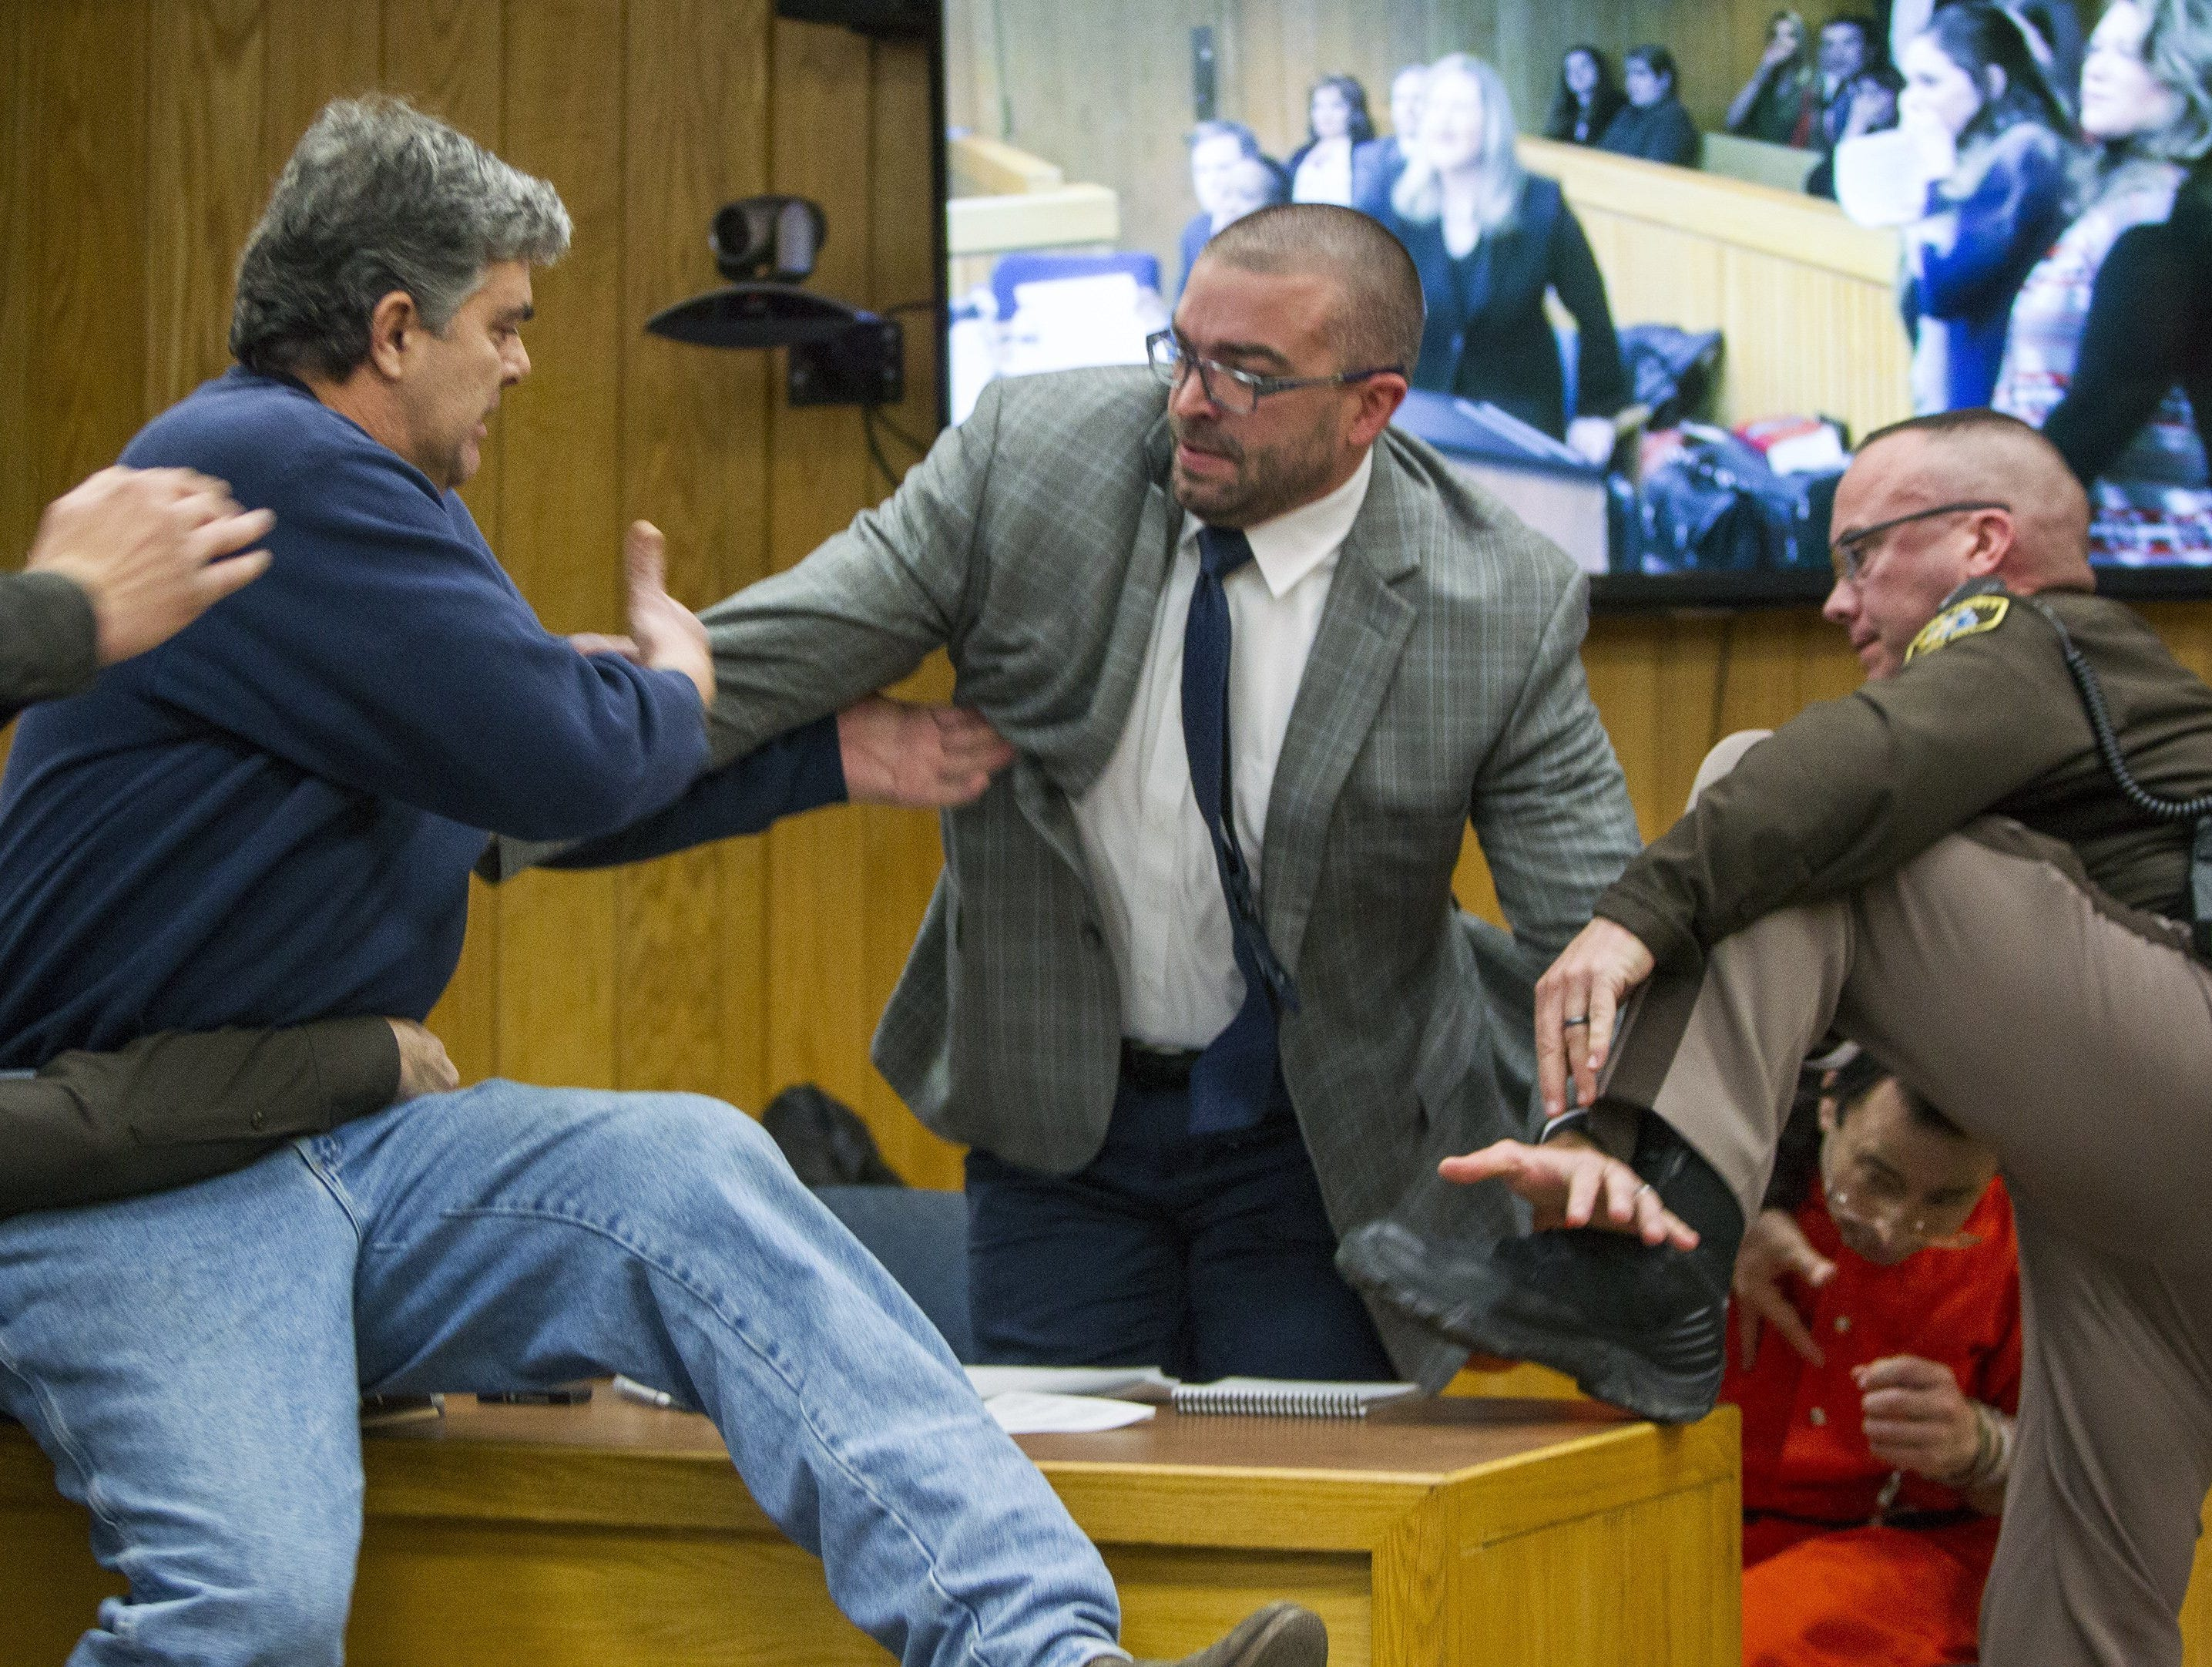 Feb. 2, 2018: Randall Margraves, father of three victims of Larry Nassar , left, lunges at Nassar, bottom right in Eaton County Circuit Court in Charlotte, Mich. The incident came during the third and final sentencing hearing for Nassar on sexual abuse charges.